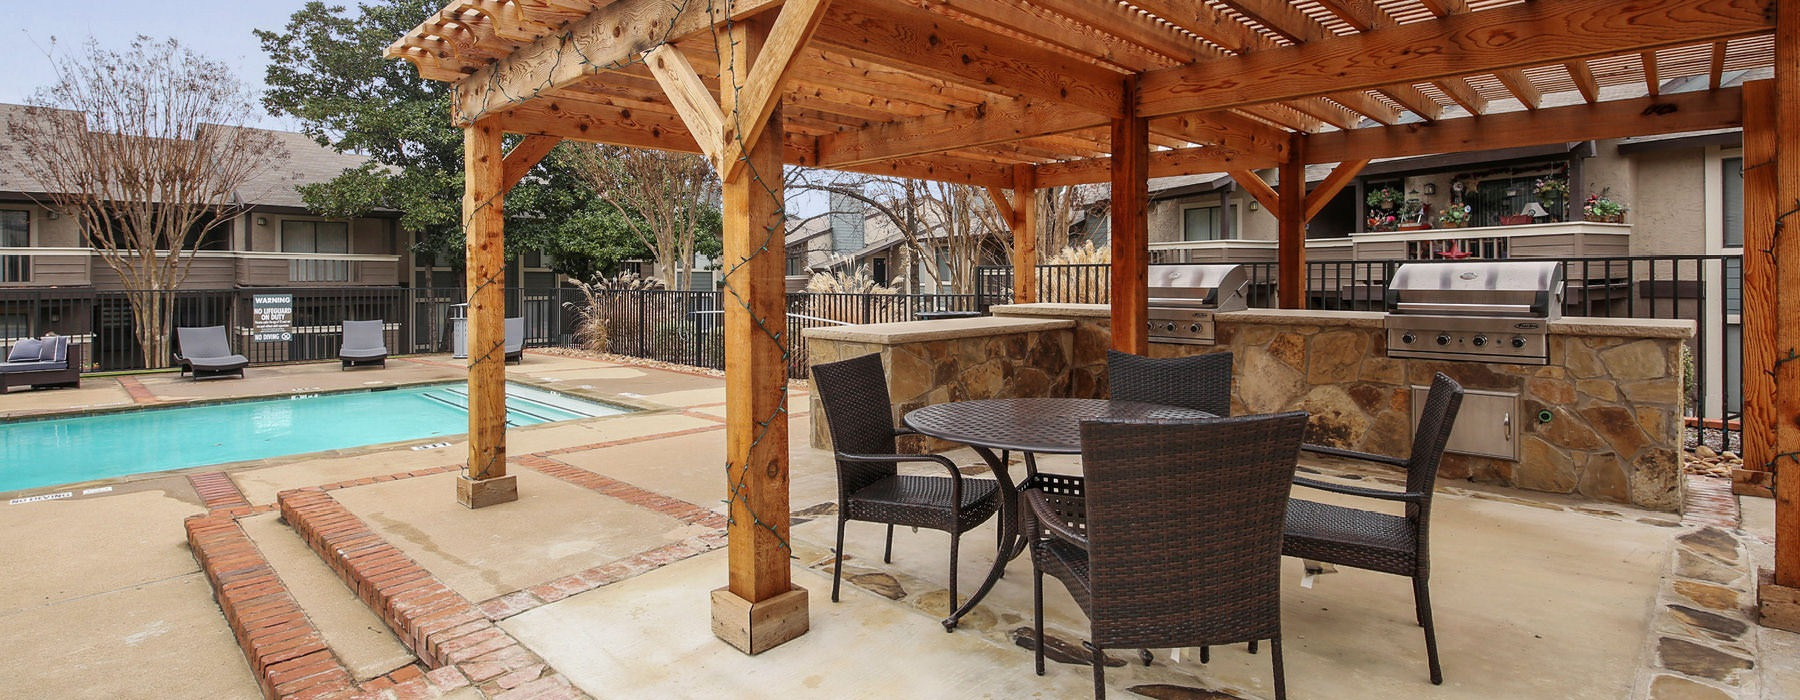 pergola covered grilling stations and picnic area near pool